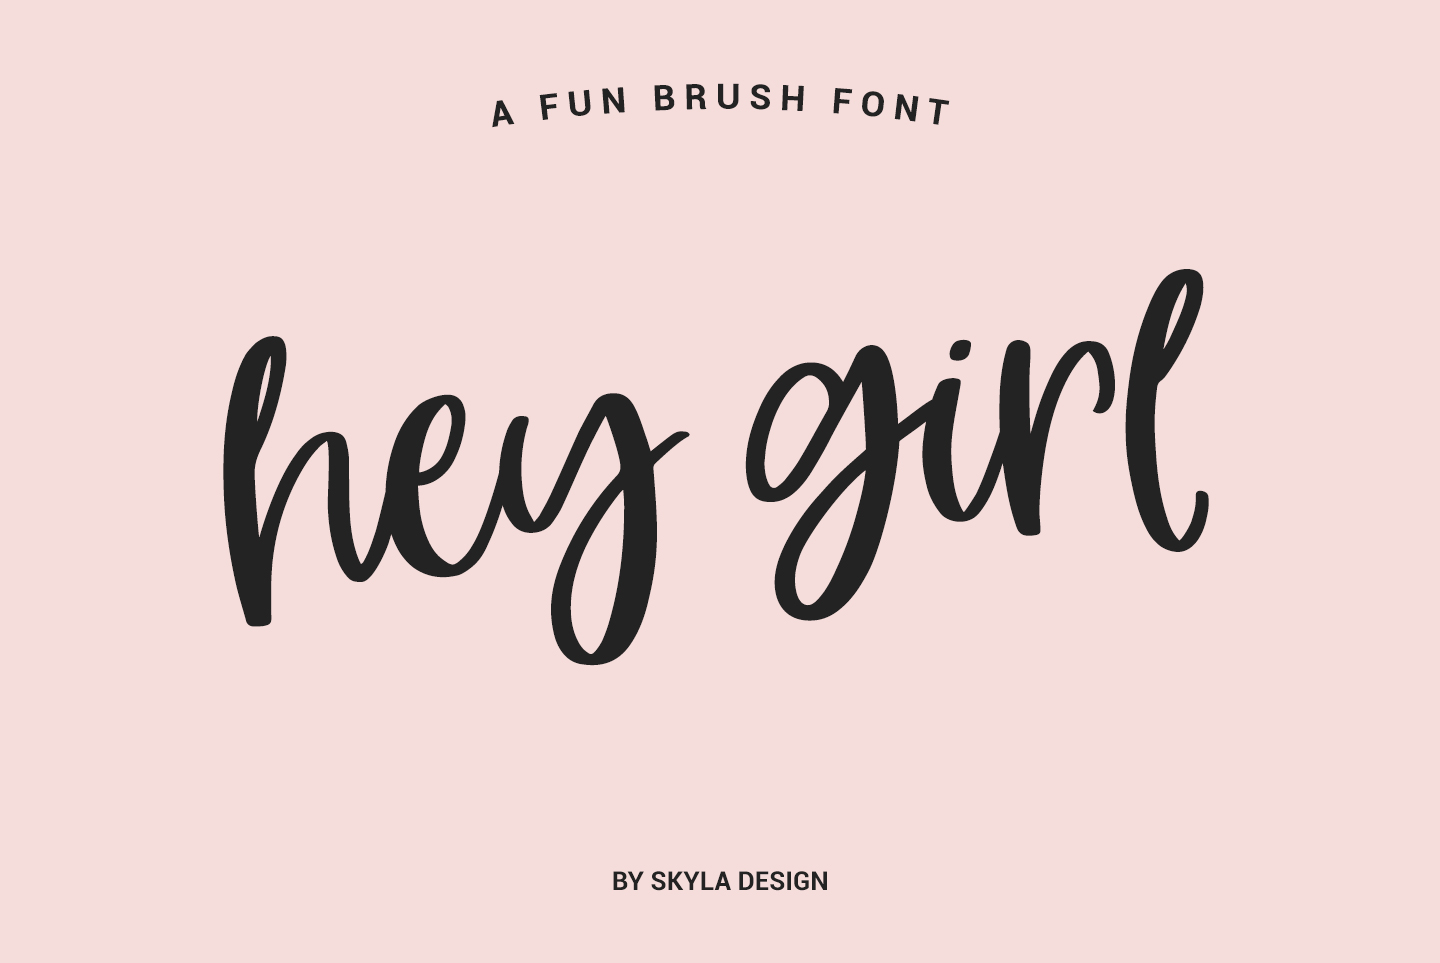 Hey Girl modern brush calligraphy font example image 1